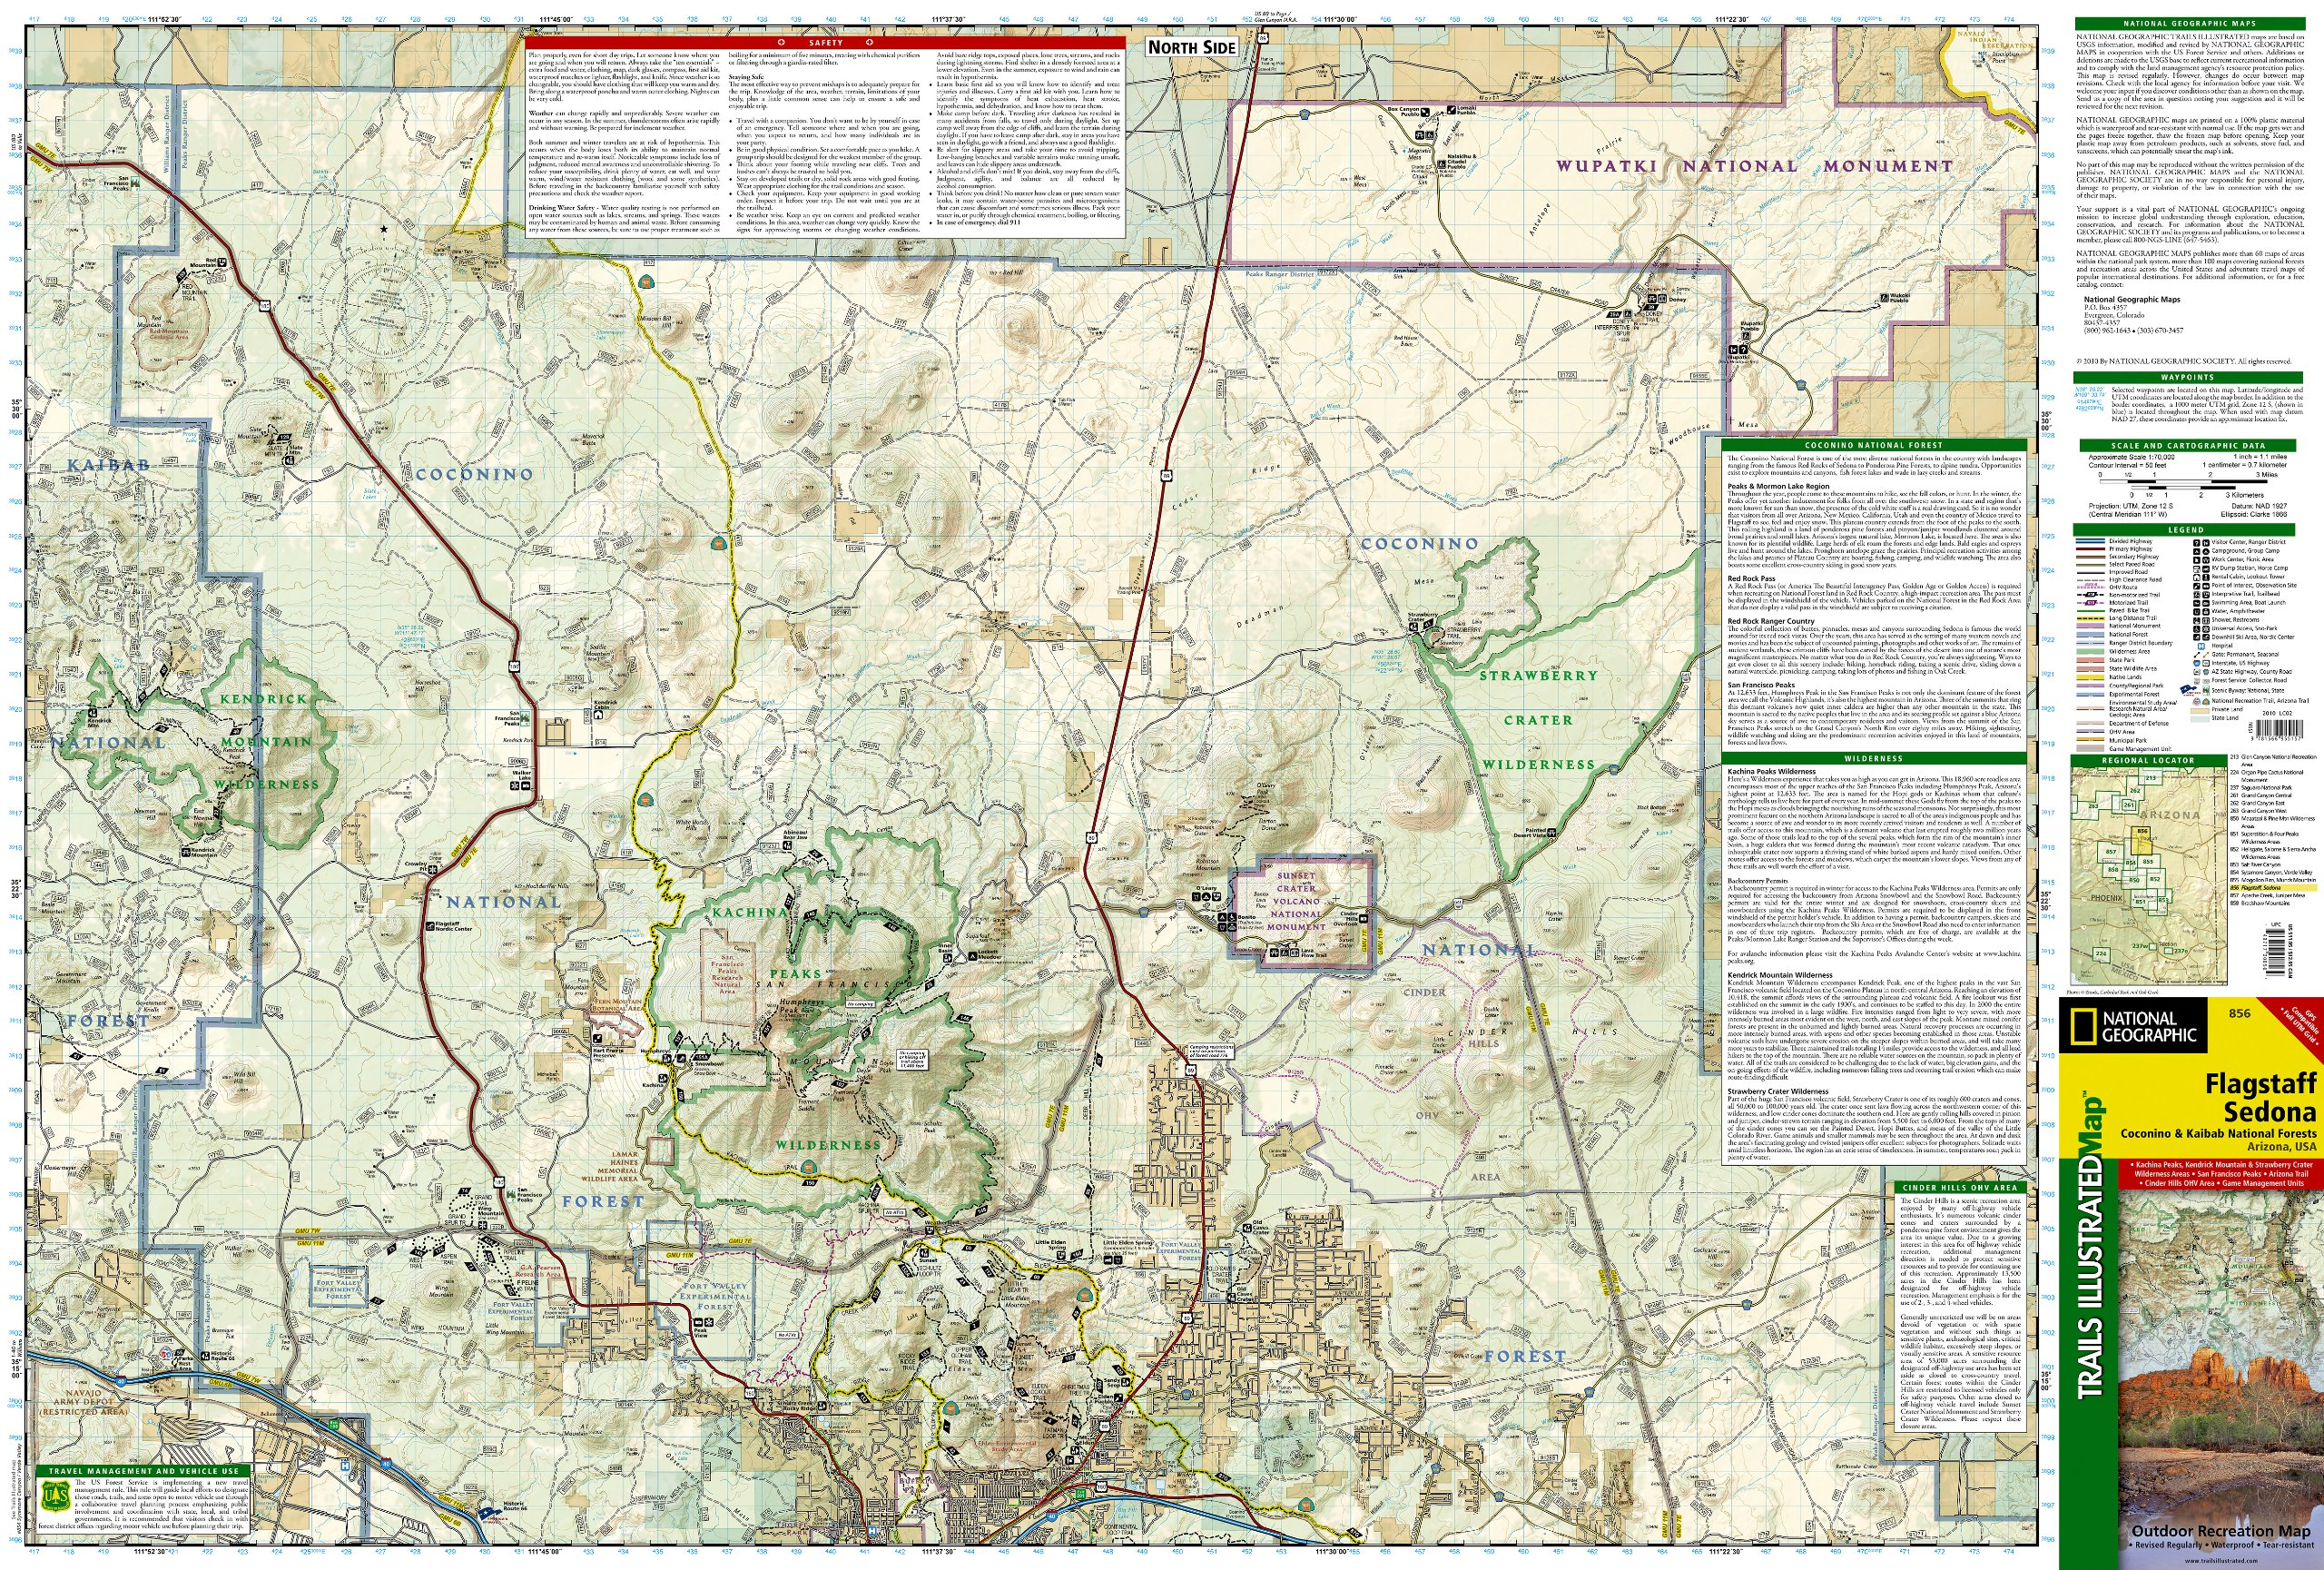 Map Of Flagstaff Arizona.Flagstaff Sedona Coconino And Kaibab National Forests National